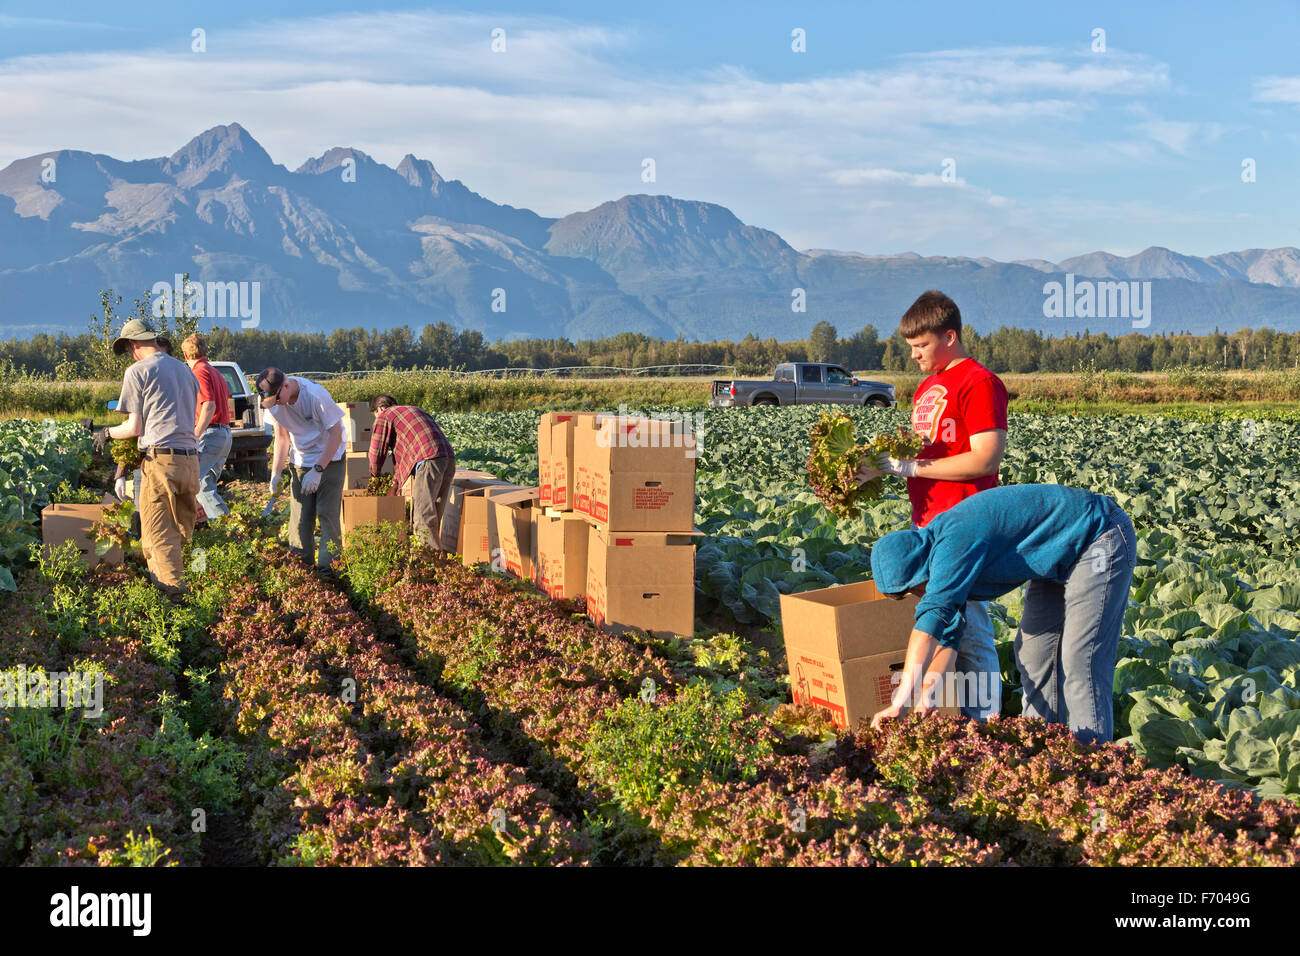 Young farm workers harvesting 'Red Leaf' lettuce, Chugach Mountains in background. - Stock Image